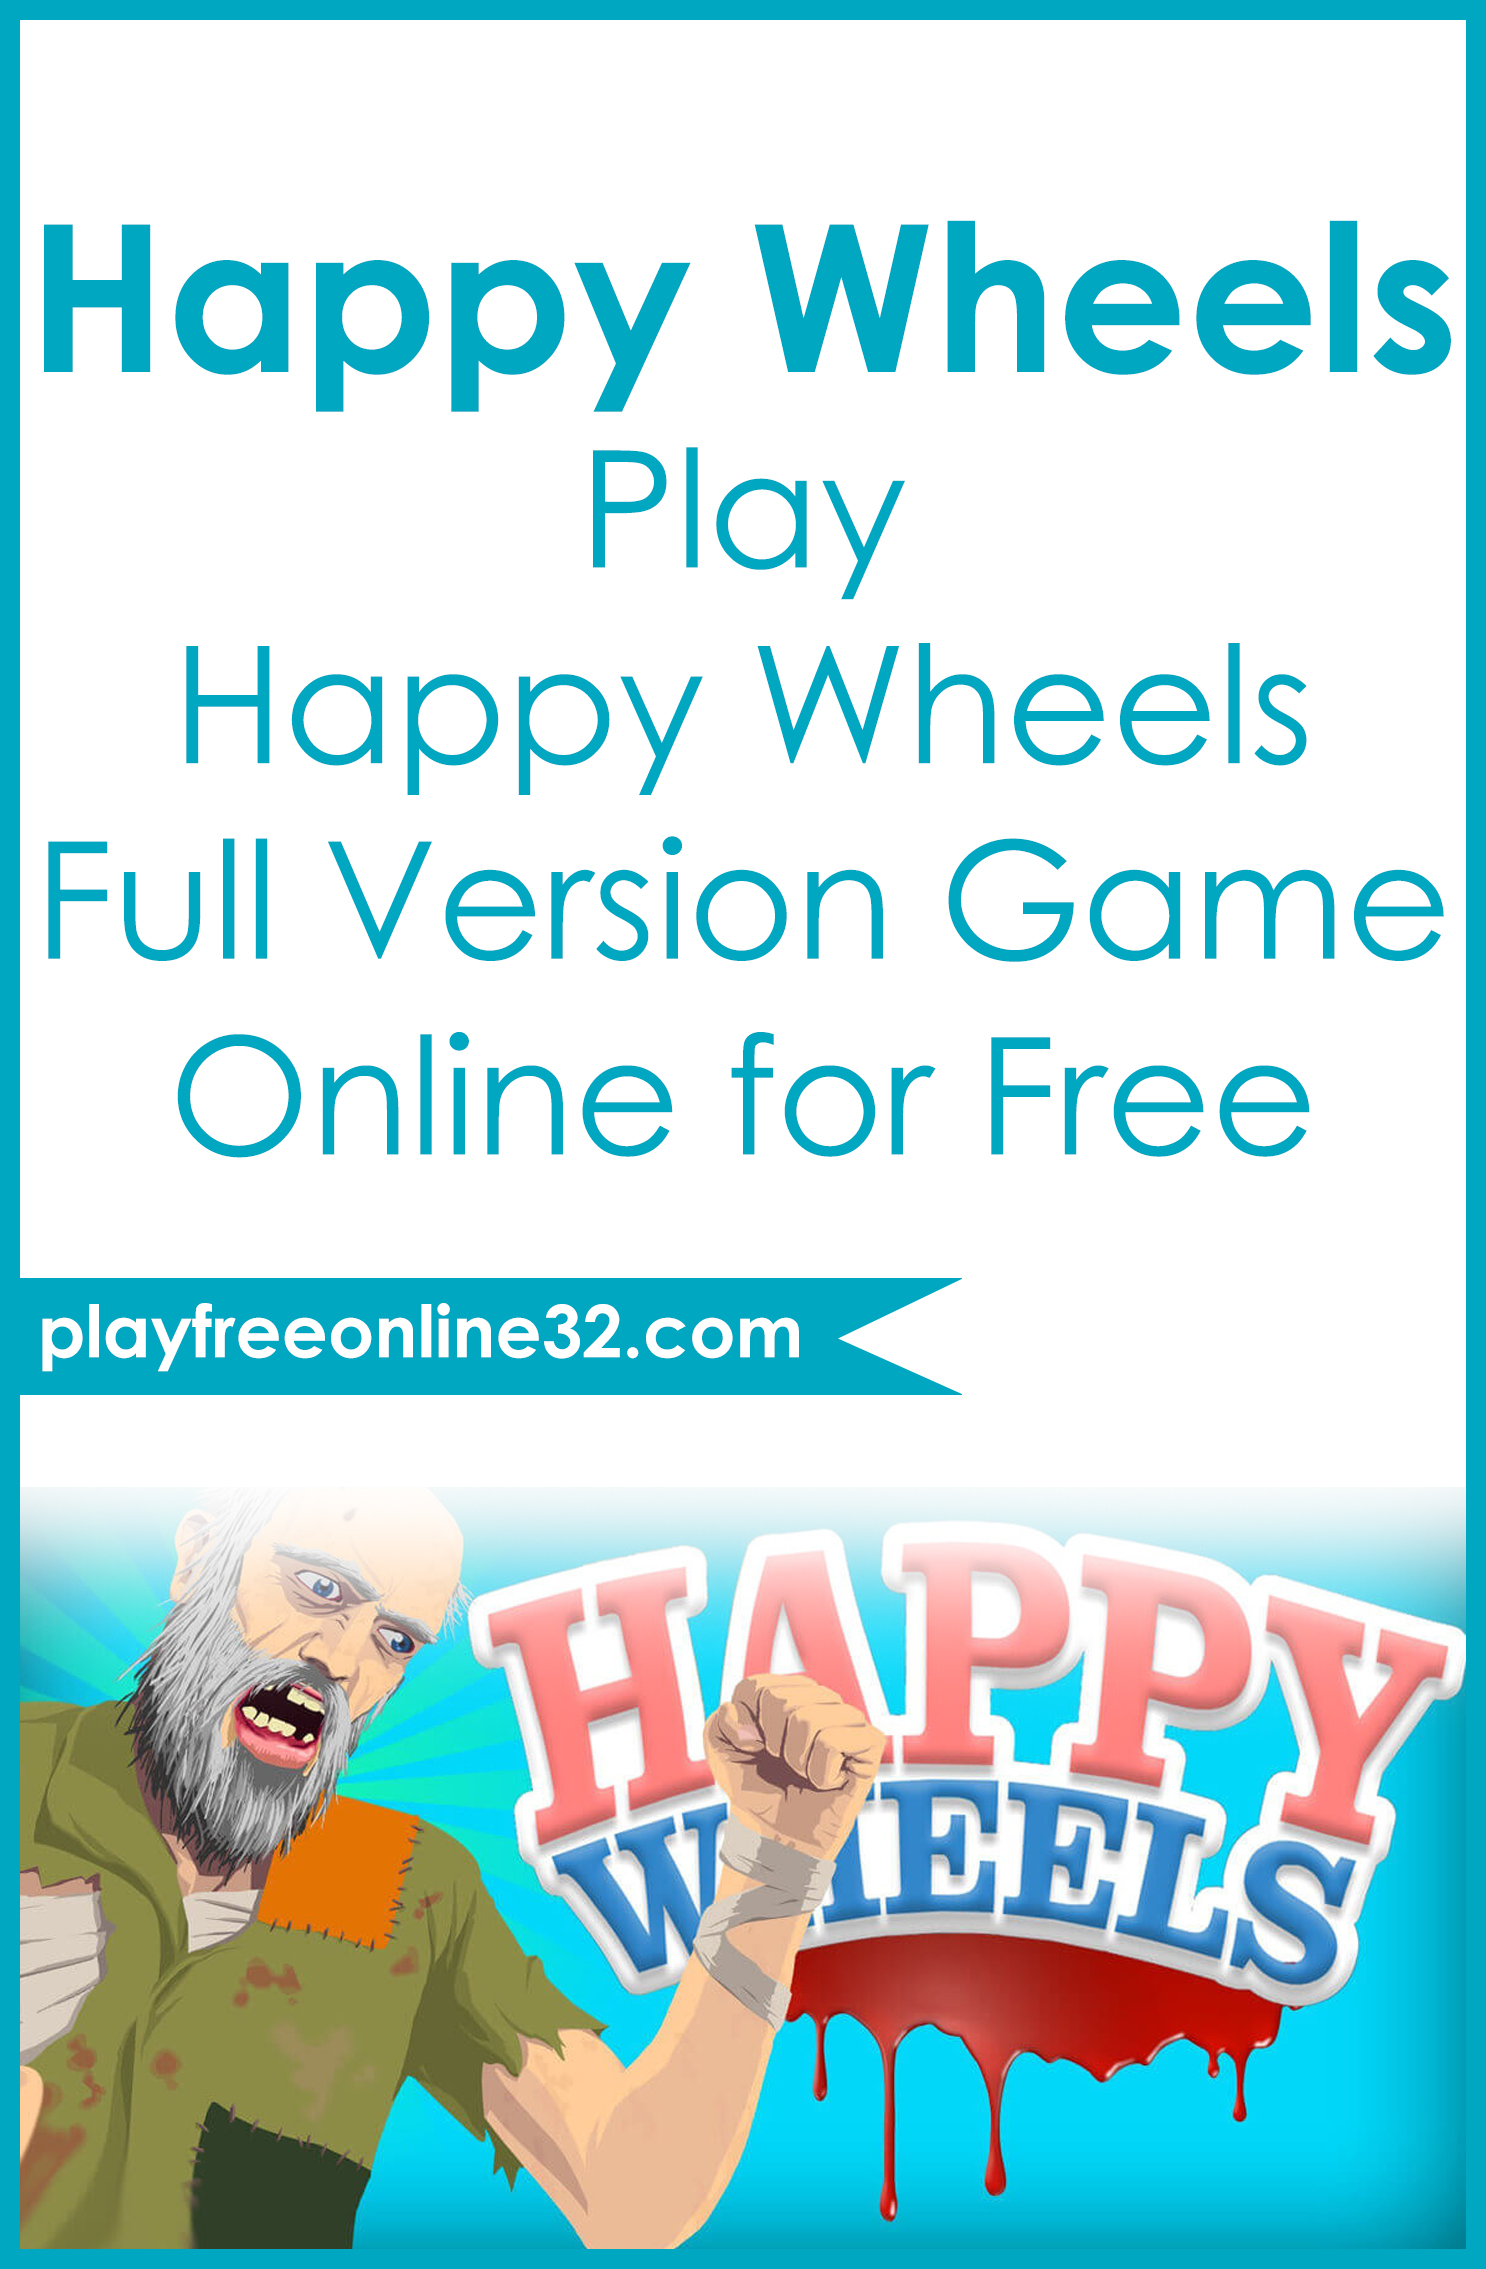 Happy Wheels • Play Happy Wheels Full Version Game Online for Free Pinterest